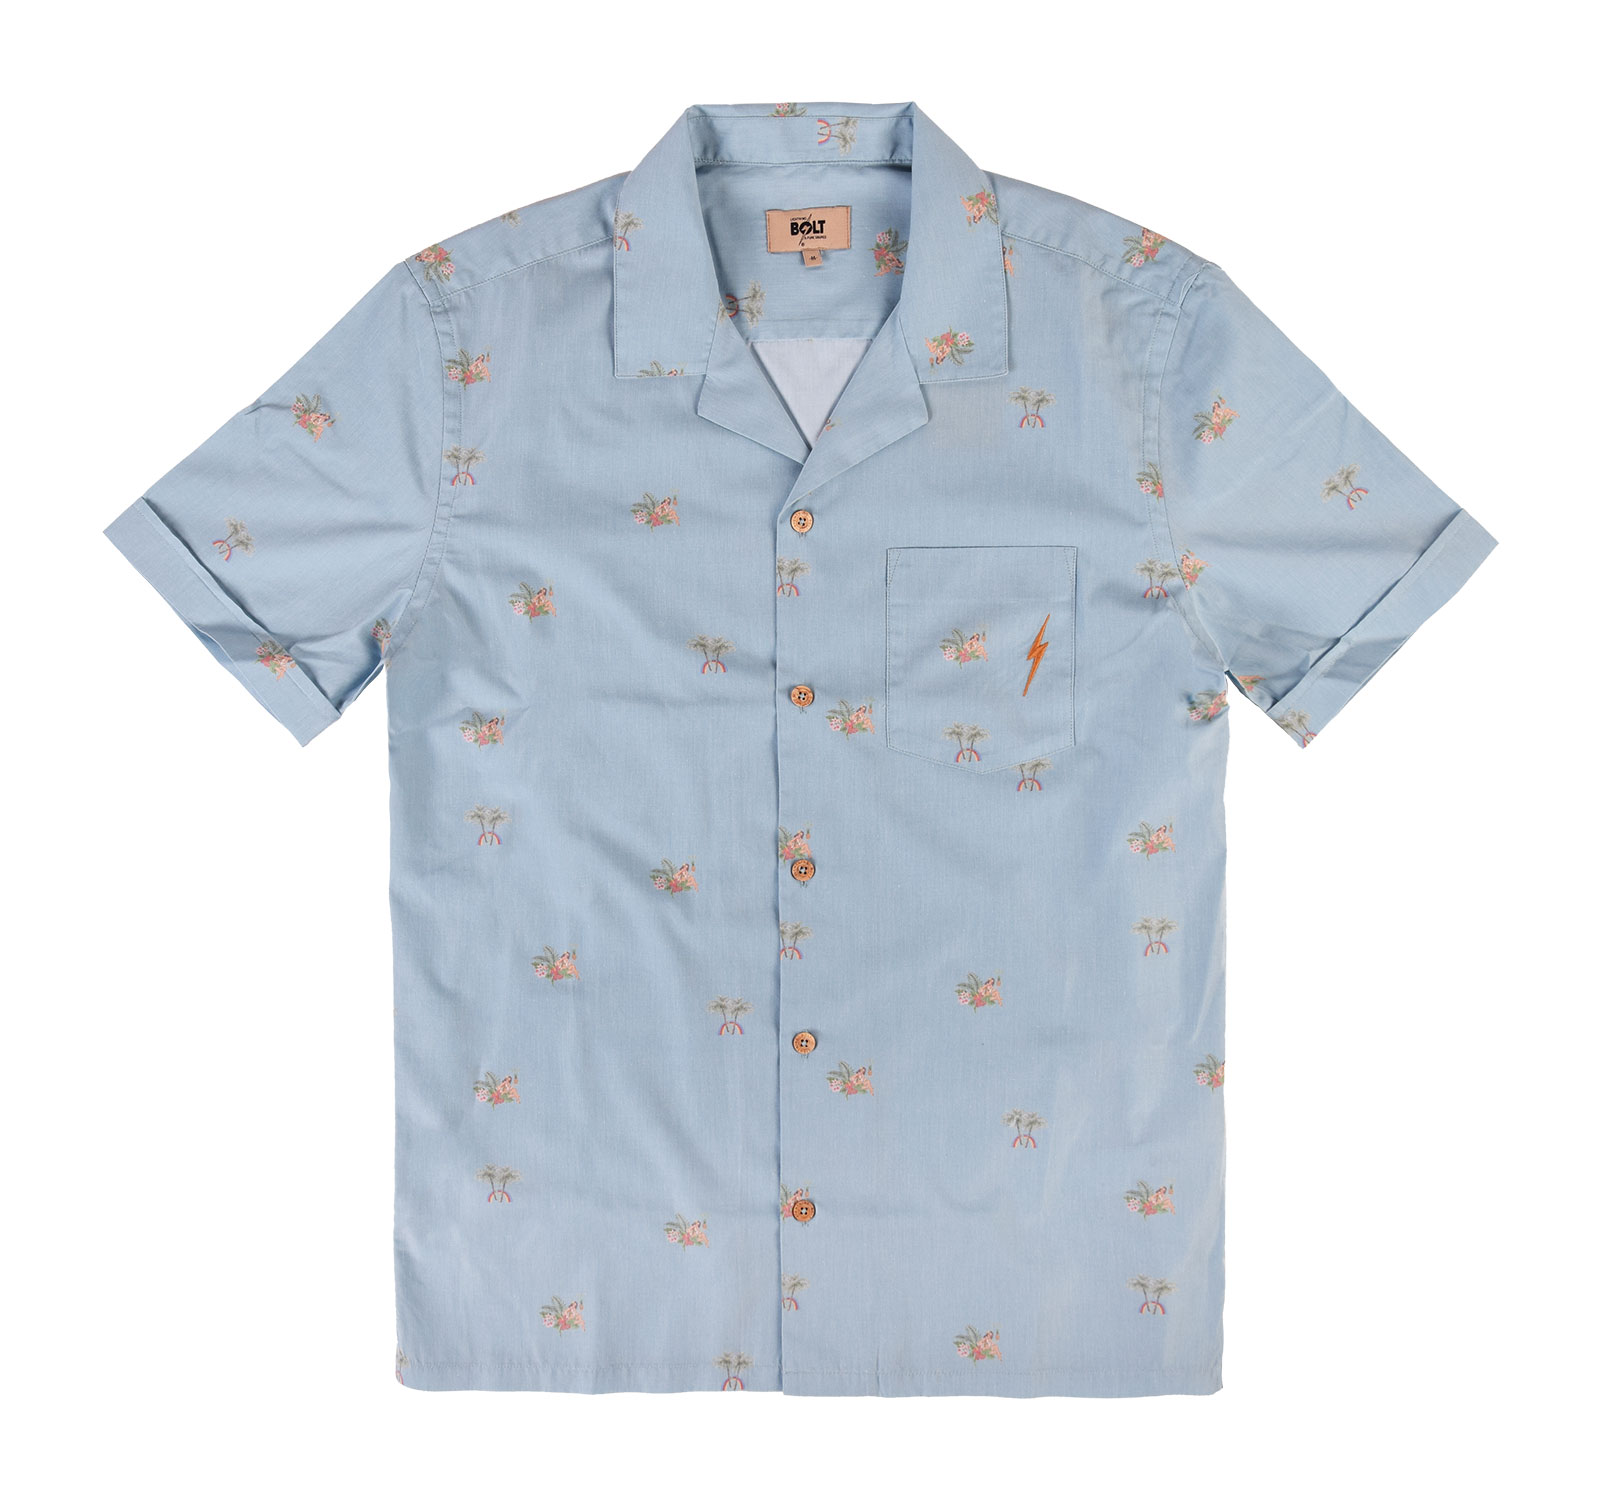 Lightning Bolt SS20 Men's Surf Apparel